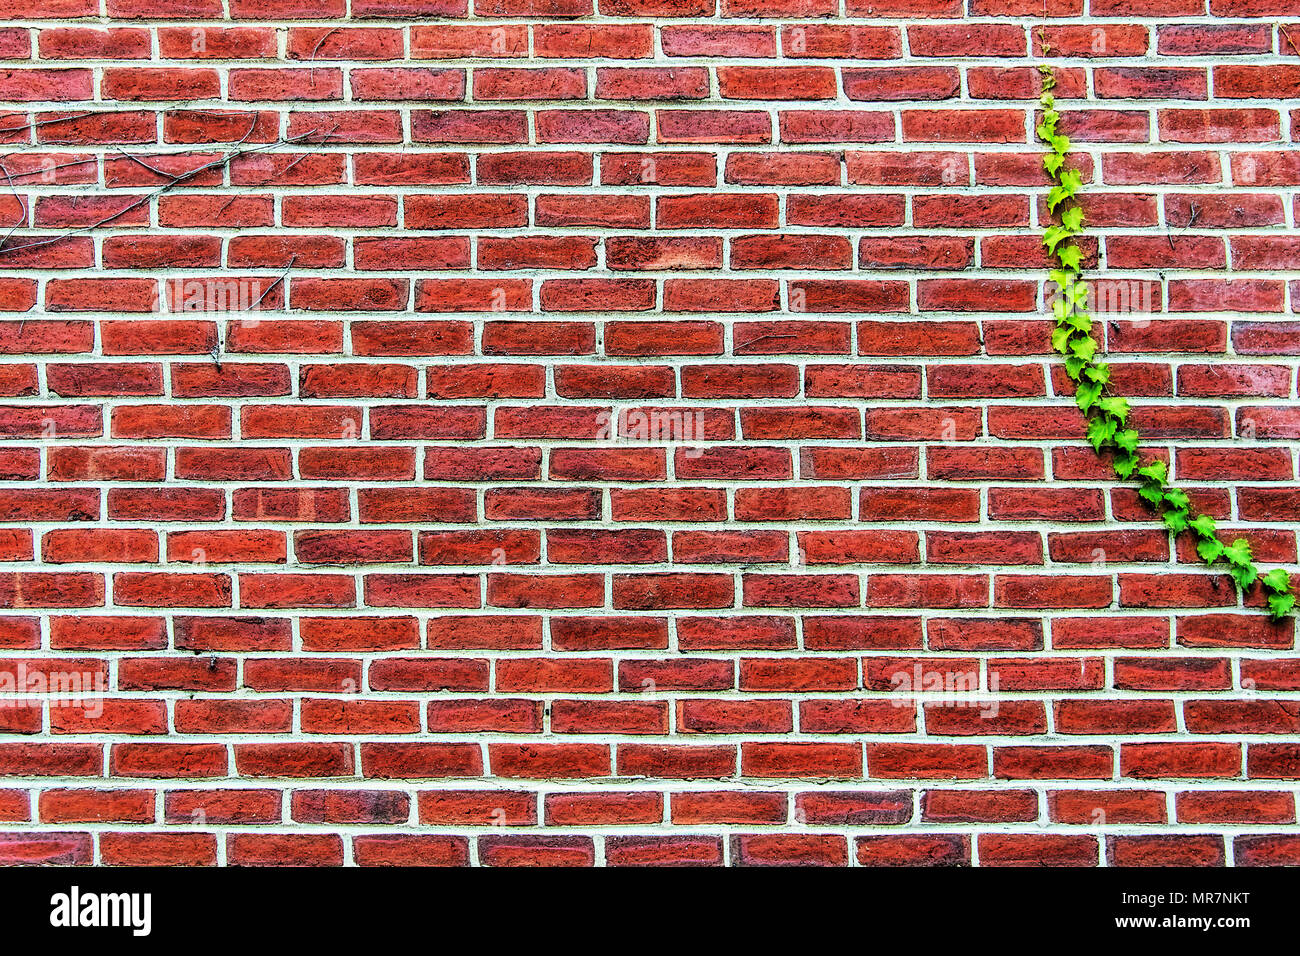 Delightful red brick wall with a single green vine growing on it, - Stock Image